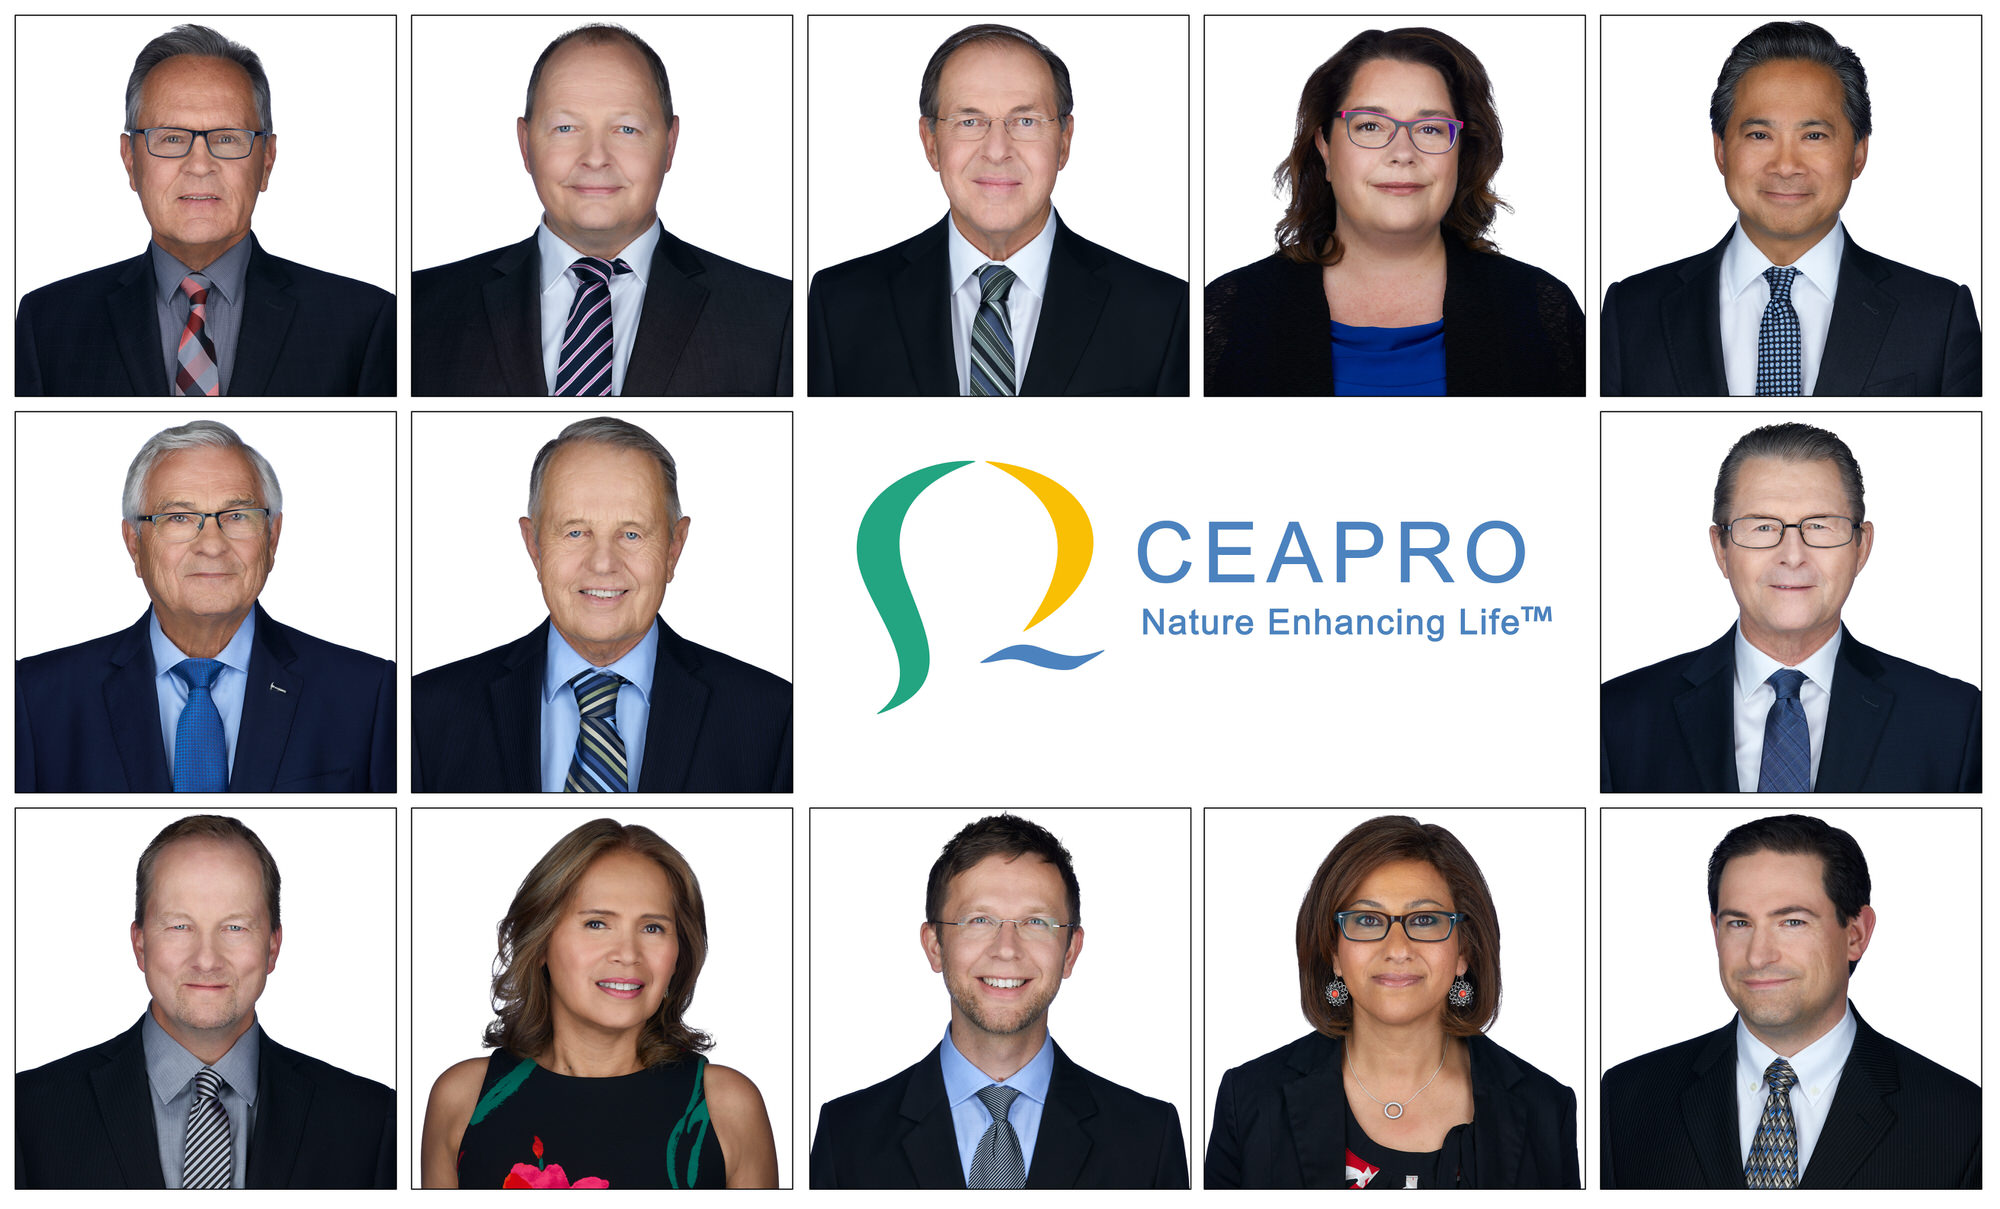 CEAPRO-Nature-Enhancing-Life-Corporate-headshots-business-headshot-team-portfolio-group-portrait-linkedin-profile-edmonton-alberta-calgary-Ryan-Parker-Photography .jpg